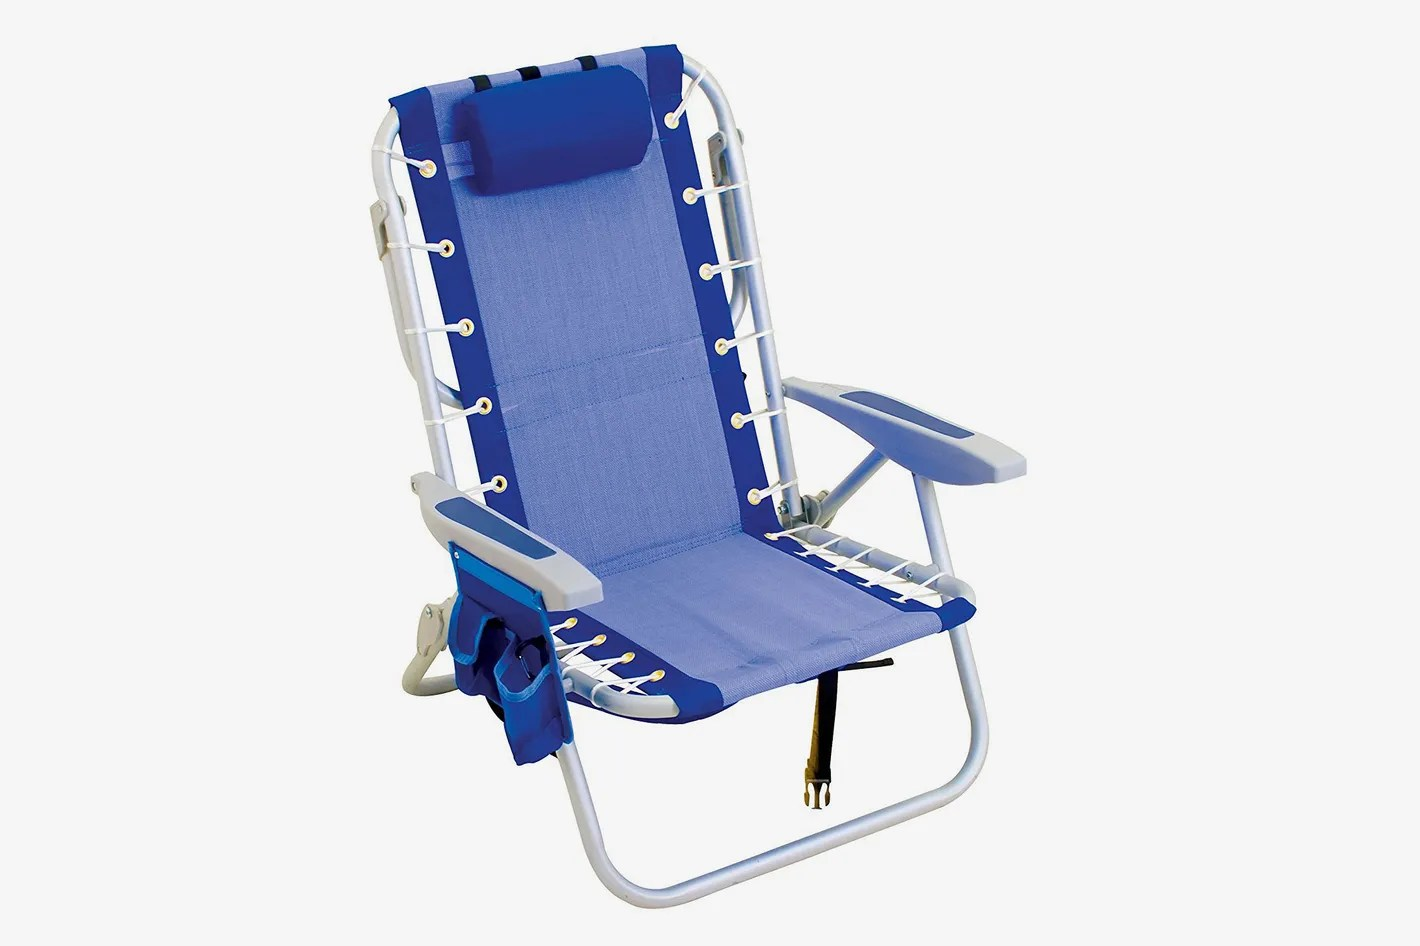 tommy bahama beach chair pottery barn dining slipcovers the 5 best chairs rio gear ultimate backpack with cooler